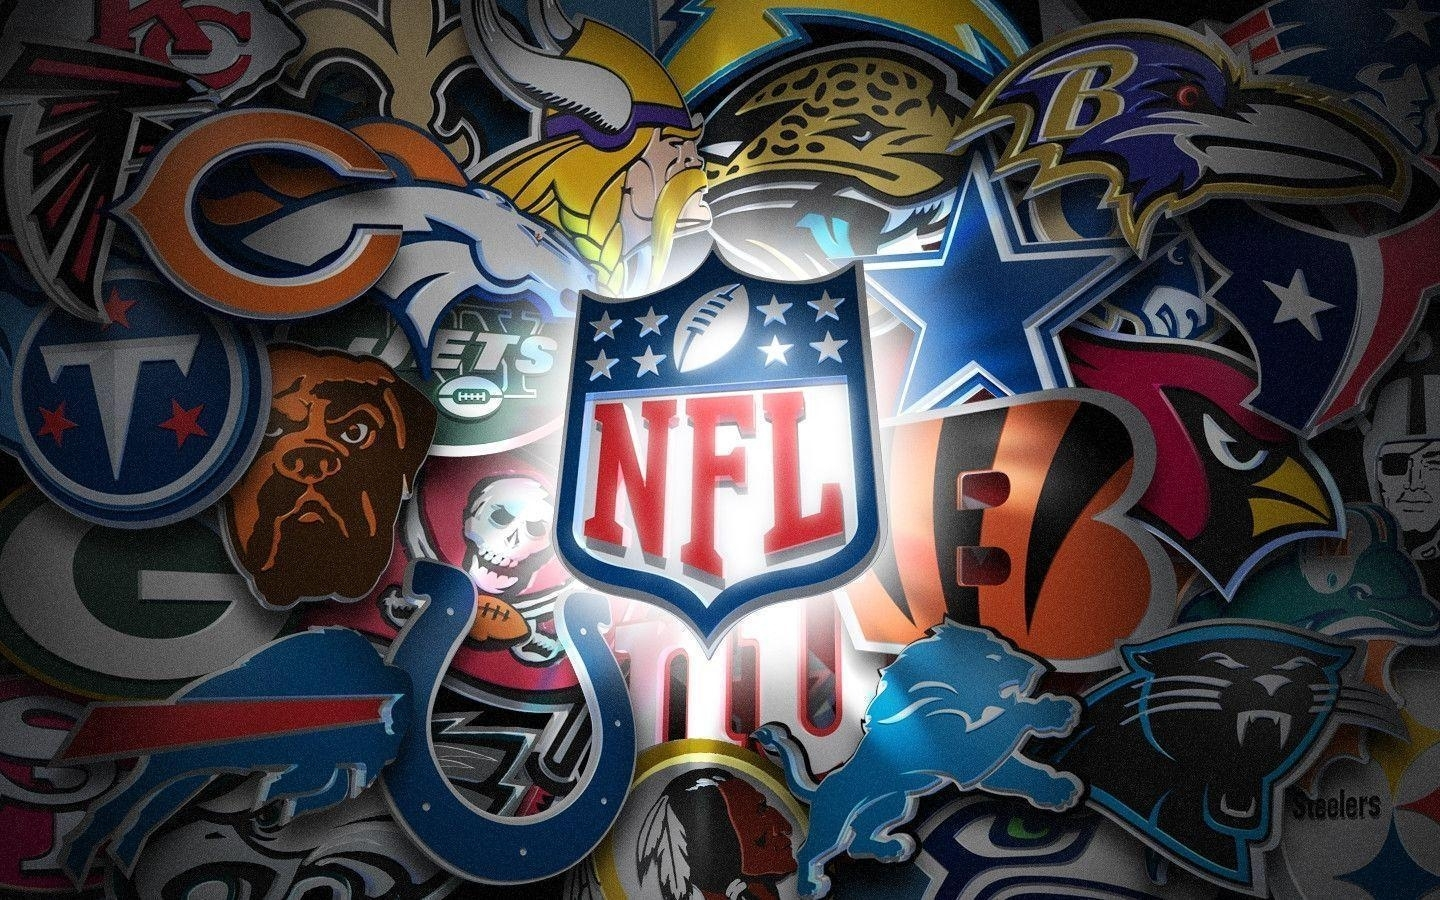 nfl teams wallpapers 2017 - wallpaper cave